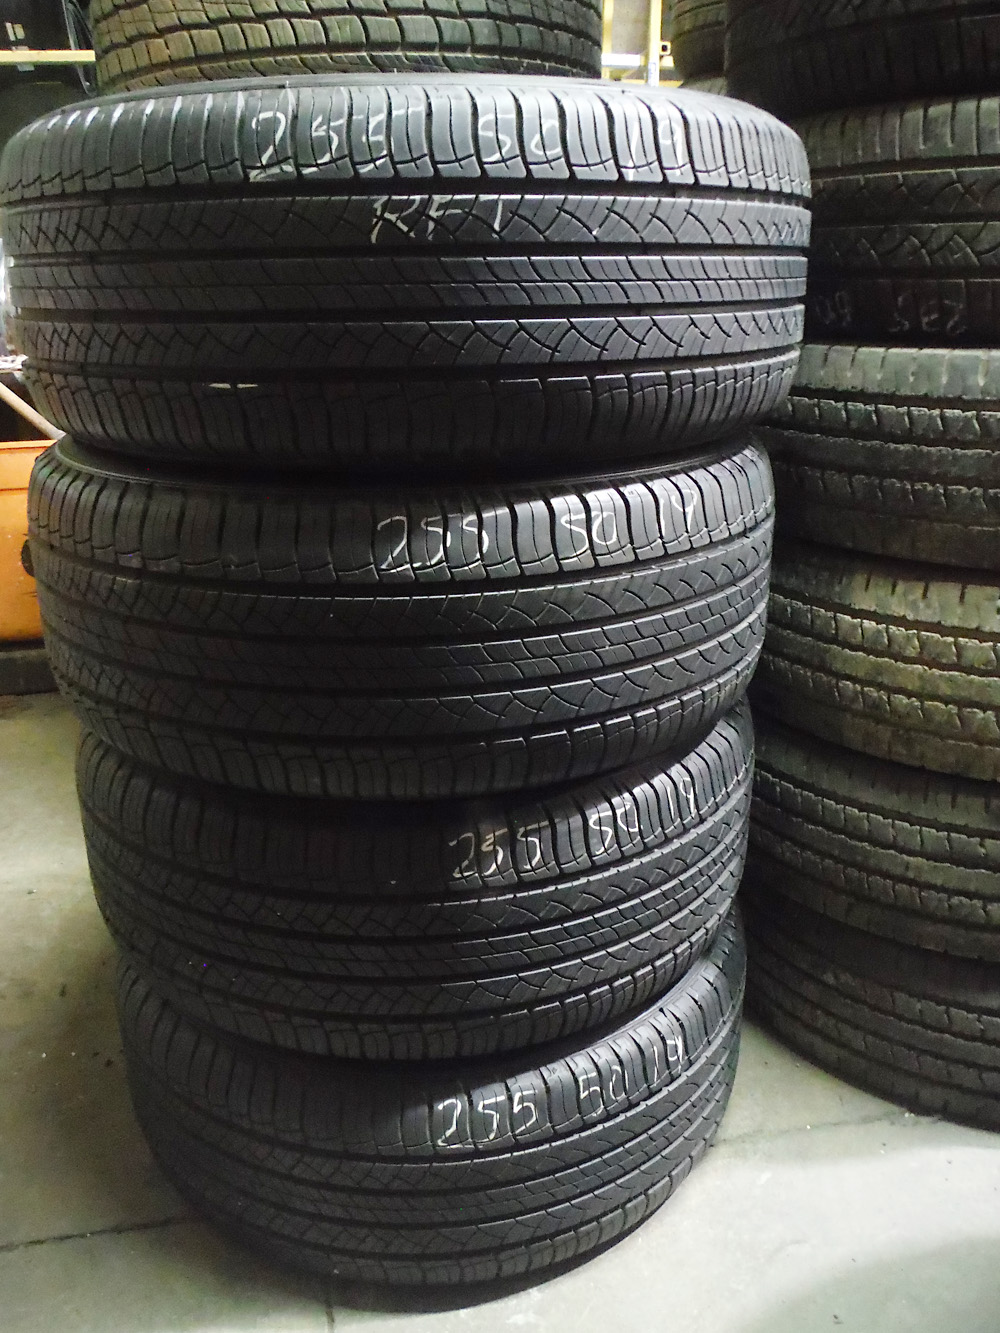 Michelin 255/50R19 runflat tires for sale